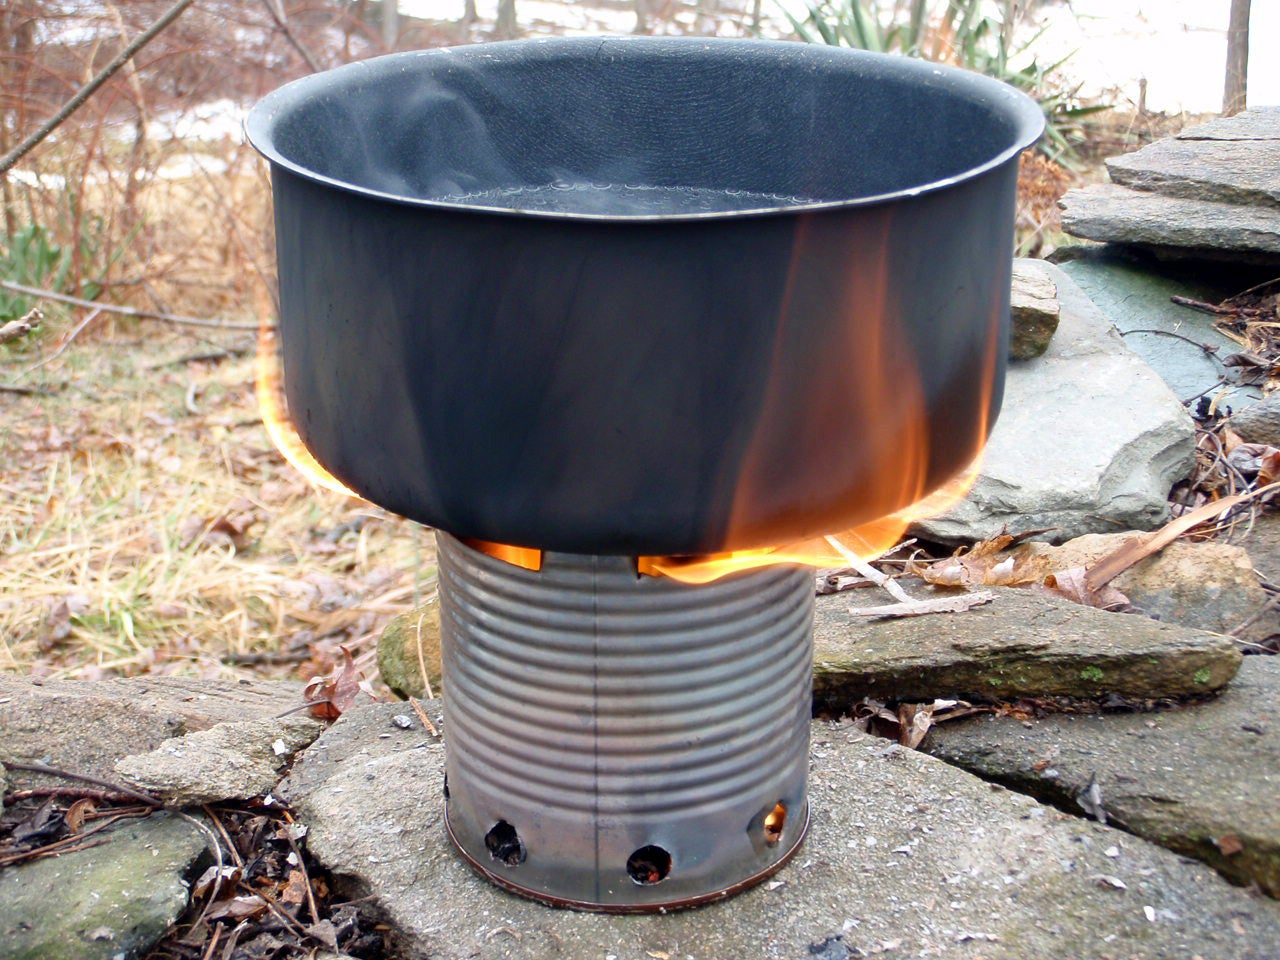 homemade can stove